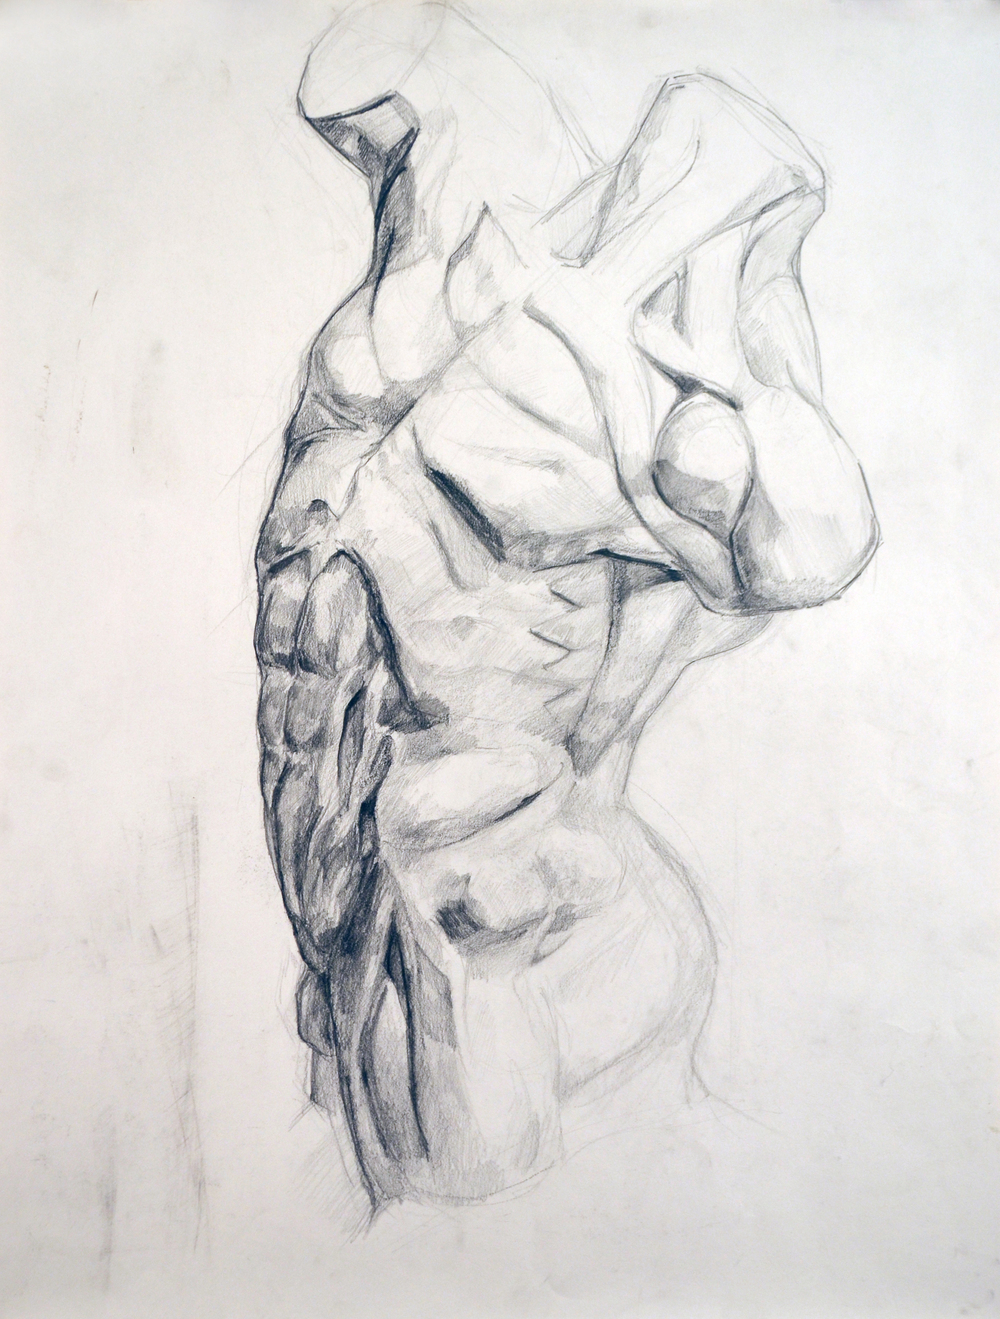 Highschool Anatomy and Structure figure drawing